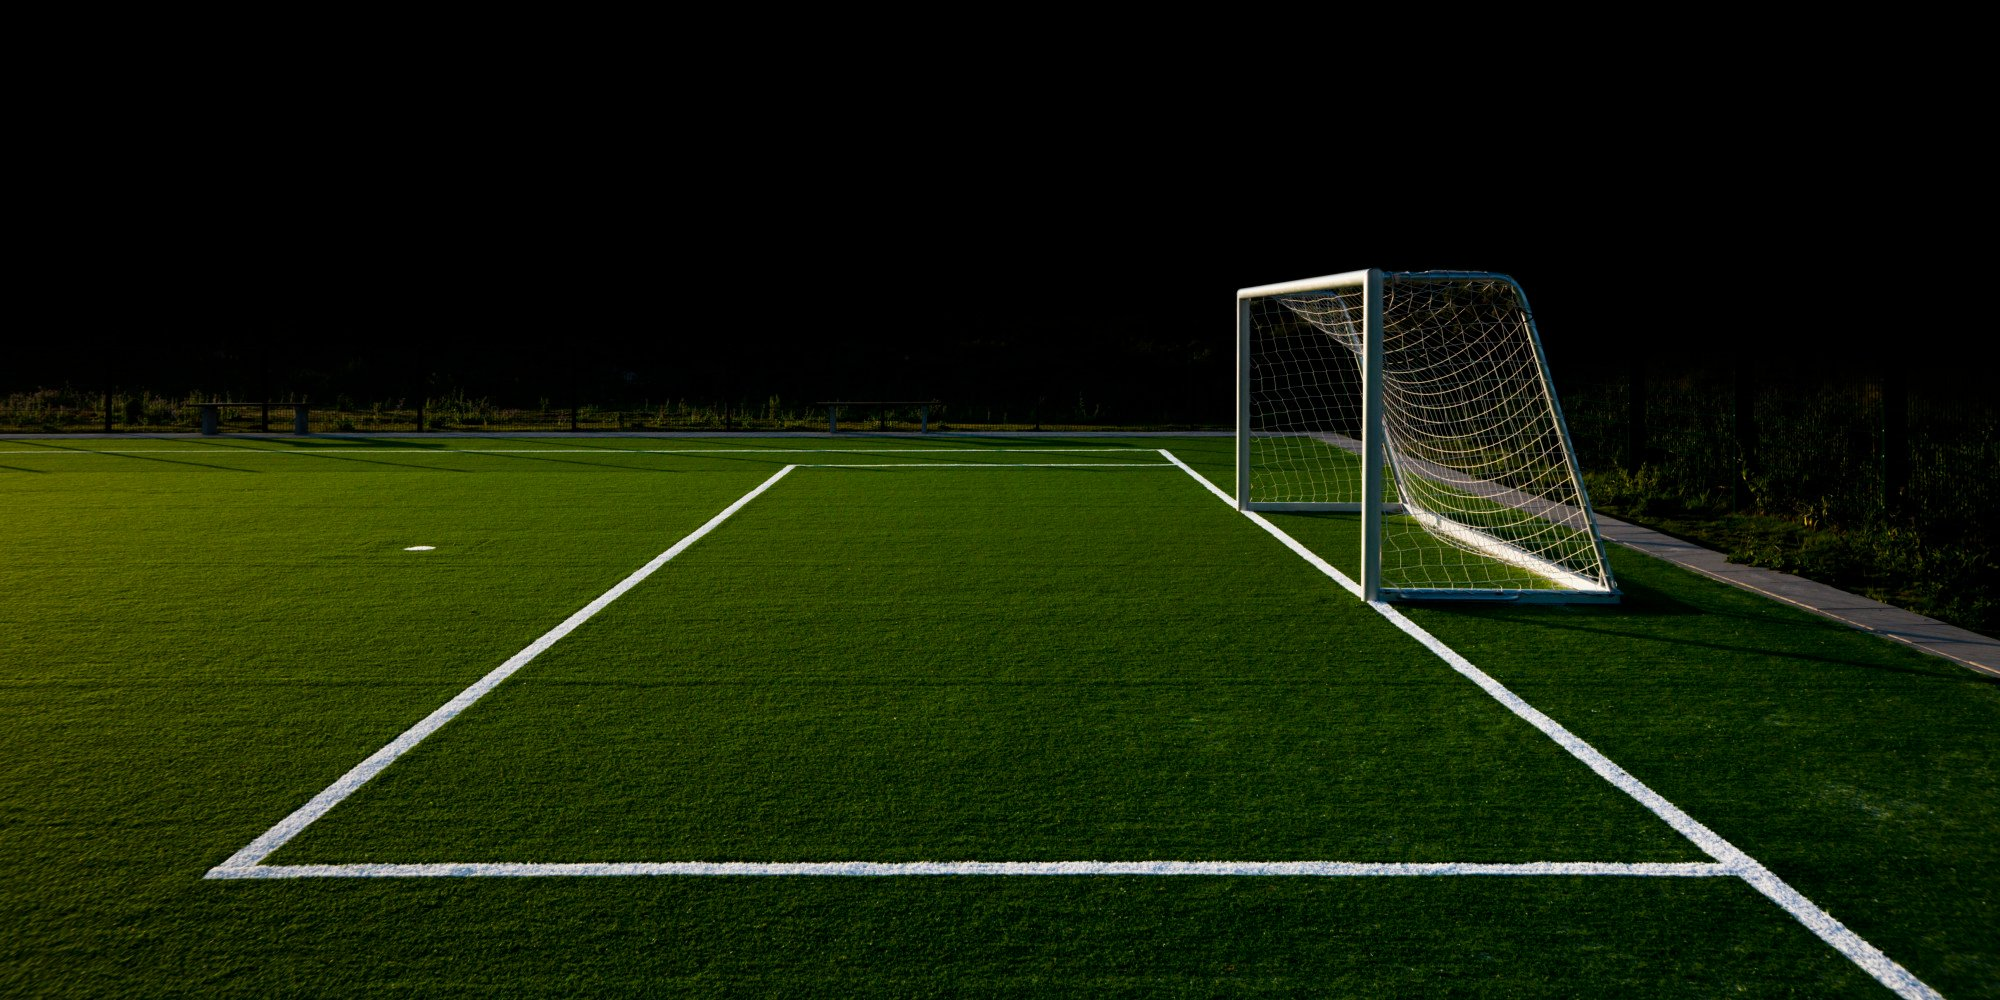 Soccer Field Wallpaper - WallpaperSafari Soccer Backgrounds For Photography